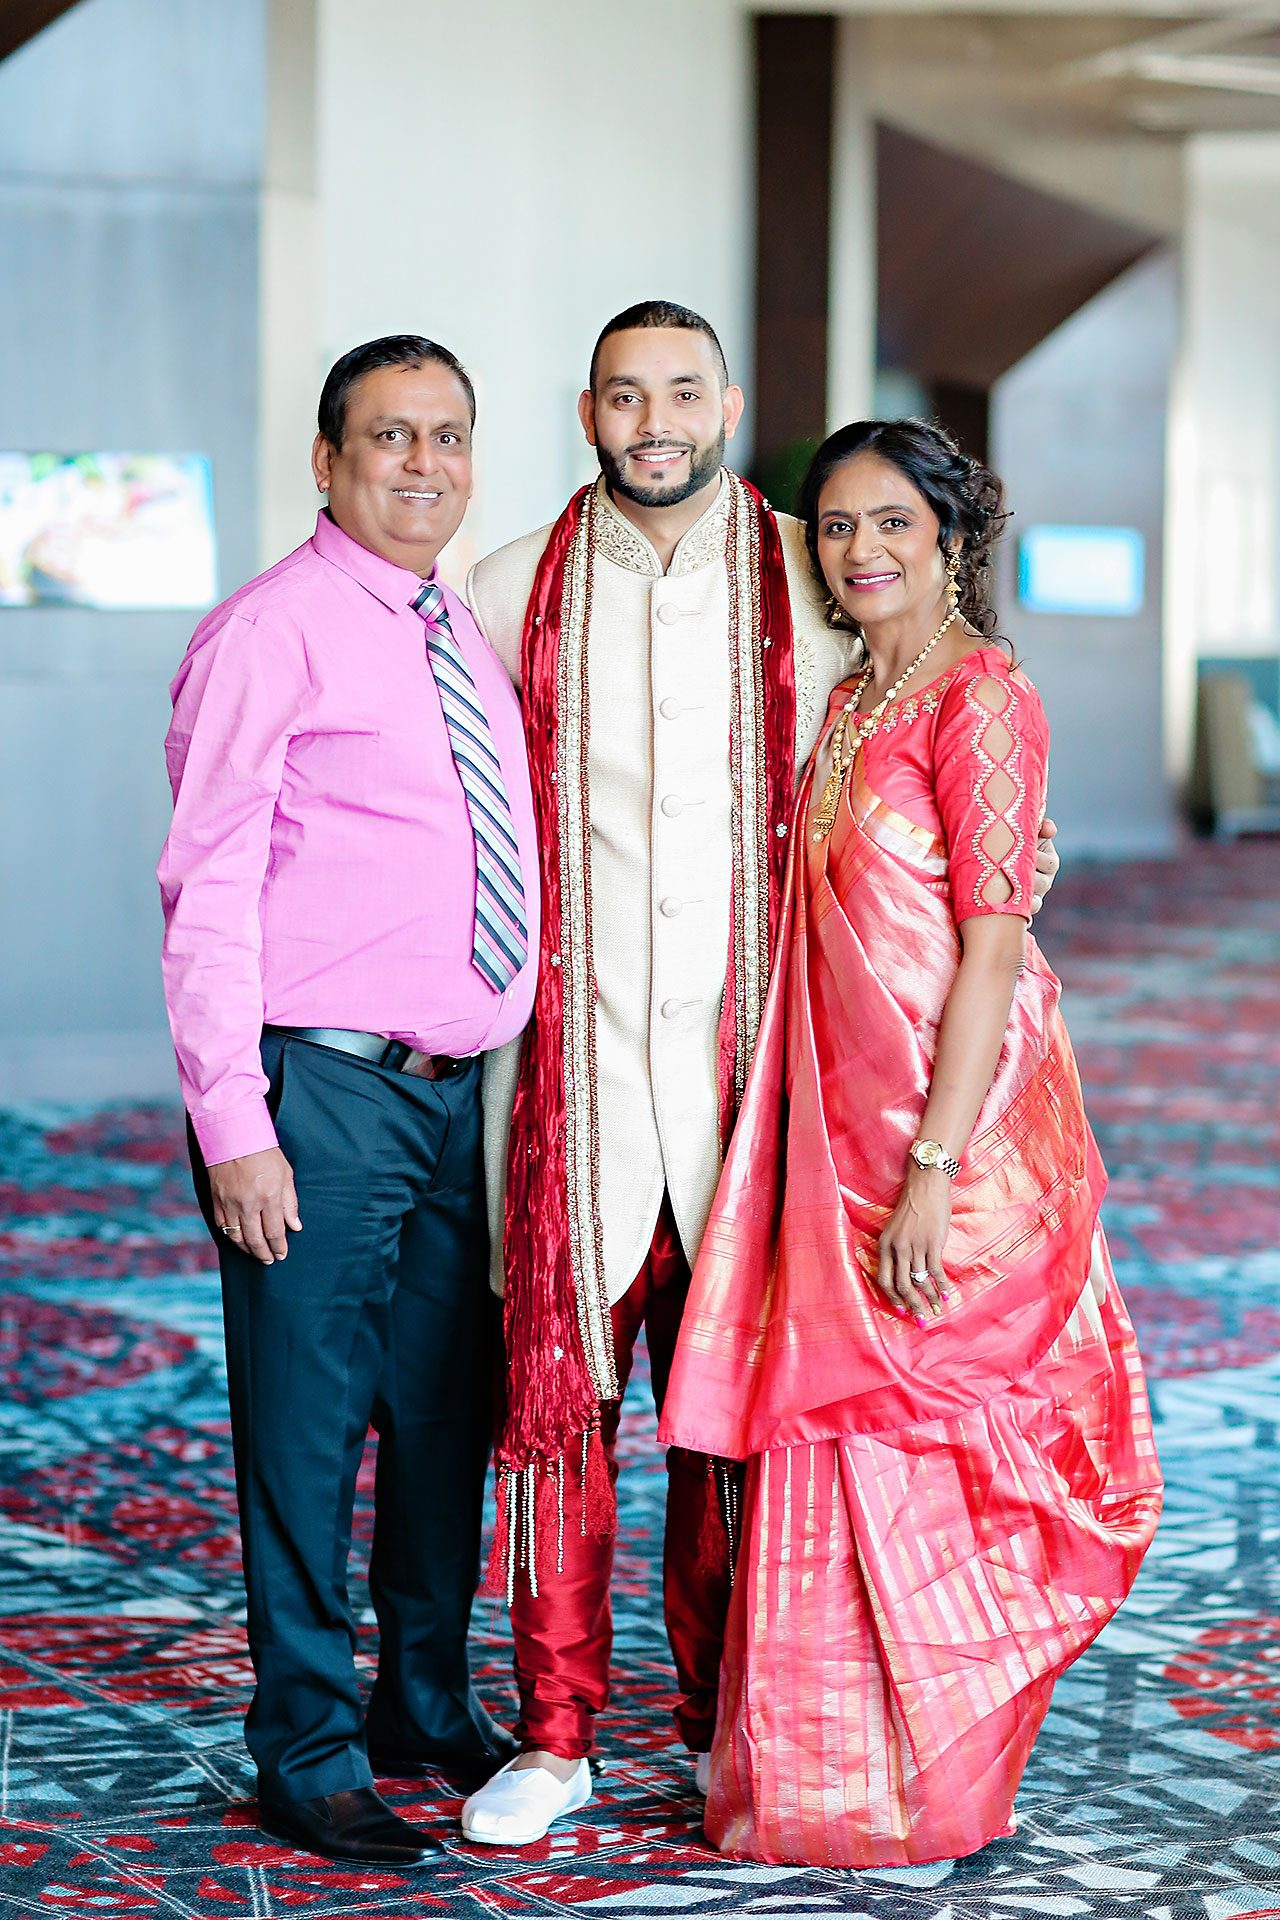 Neil Ganesh Pooja Embassy Suites Conference Center Noblesville 078